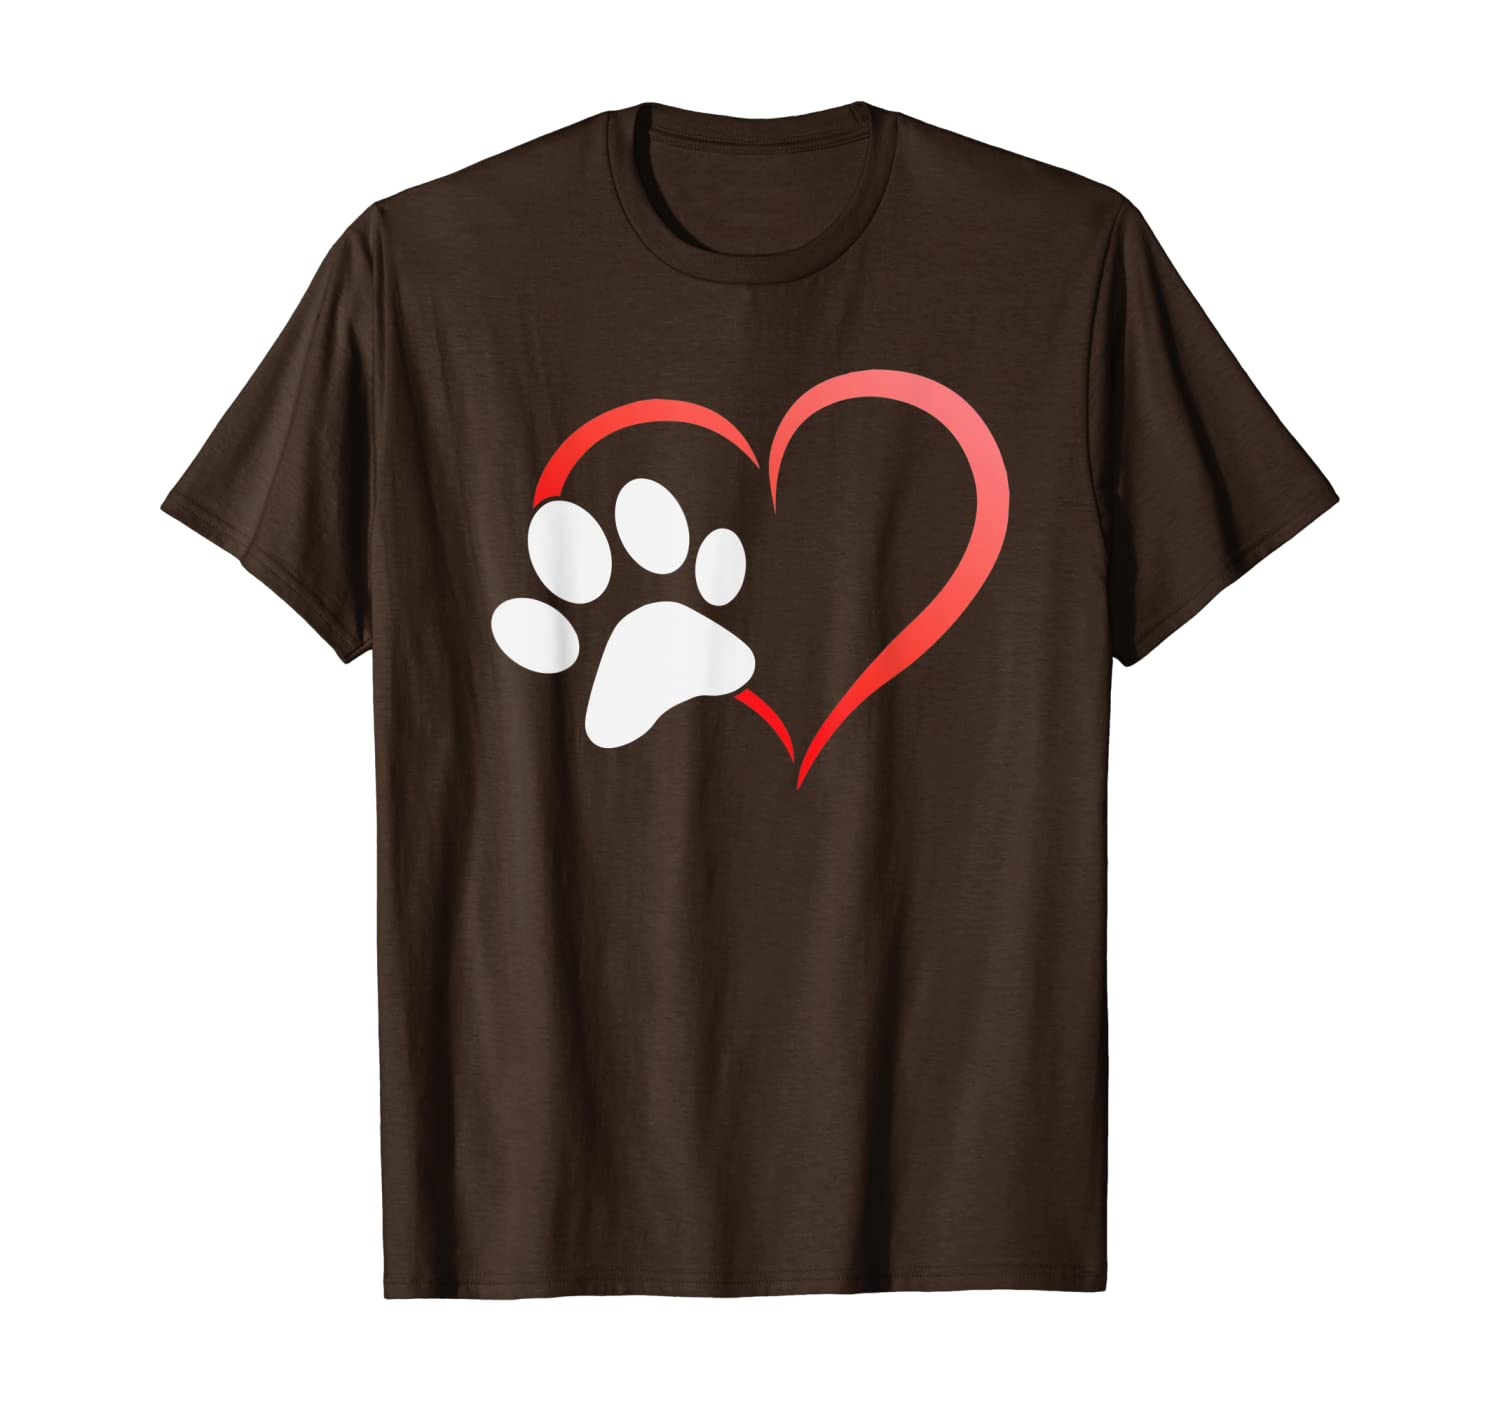 Amazon Com I Heart Love Dogs Cats Paw Print T Shirt Gift Dog Cat Lovers T Shirt Clothing Printable paw print templates for all your download this premium vector about cat paw kitten footprint heart valentine, and discover more 🔥 human hand and cat paw human hand and cat paw cut file svg, dxf, png image for vinyls. amazon com